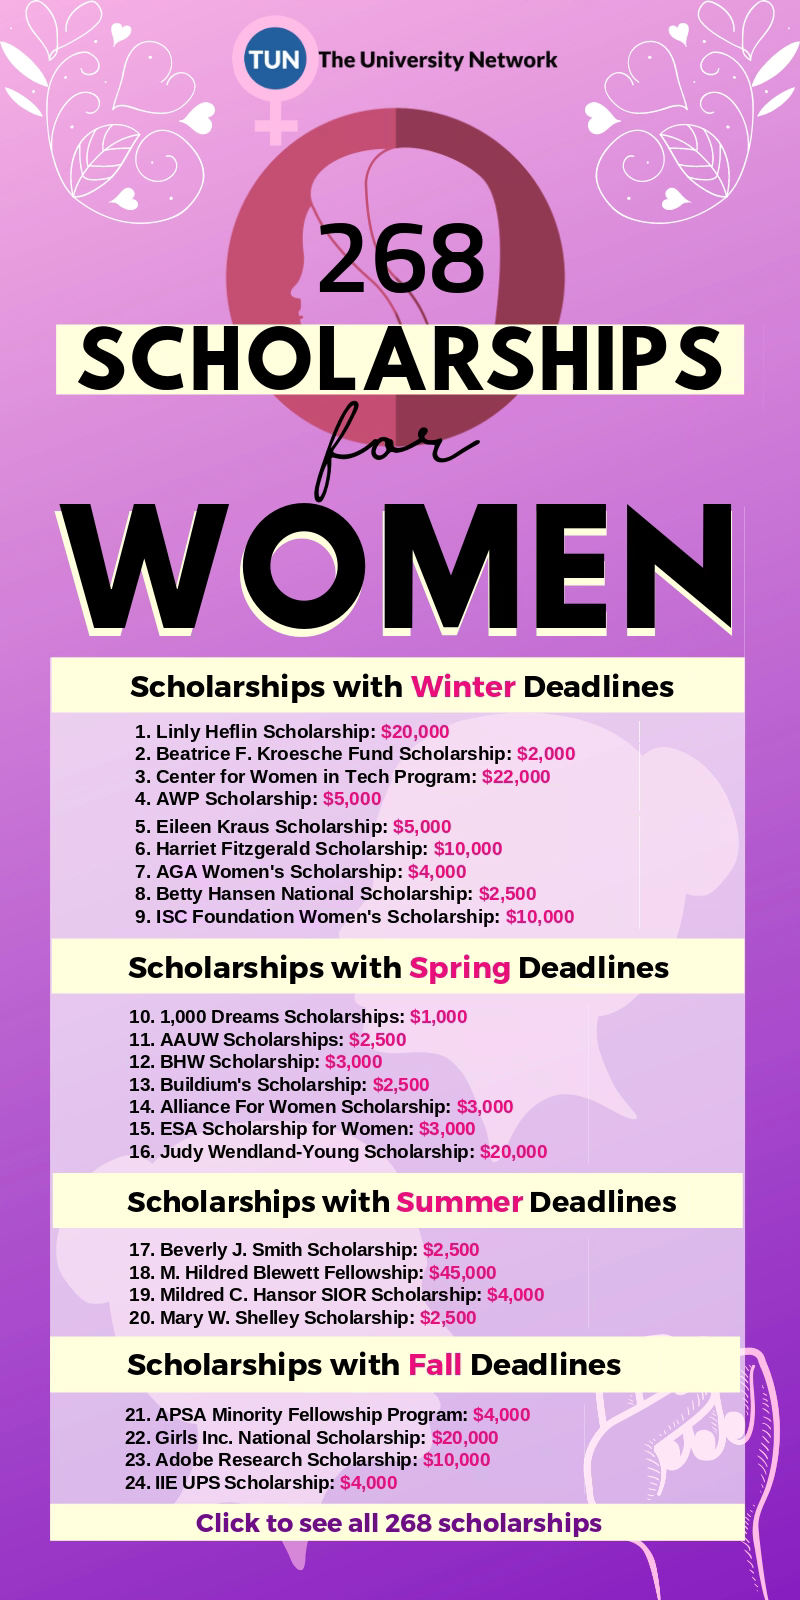 Scholarships For Women - Student scholarships, Scholarships for college students, Nursing scholarships, High school scholarships, School scholarship, Scholarships - Here's a list of selected Scholarships For Women listed on The University Network